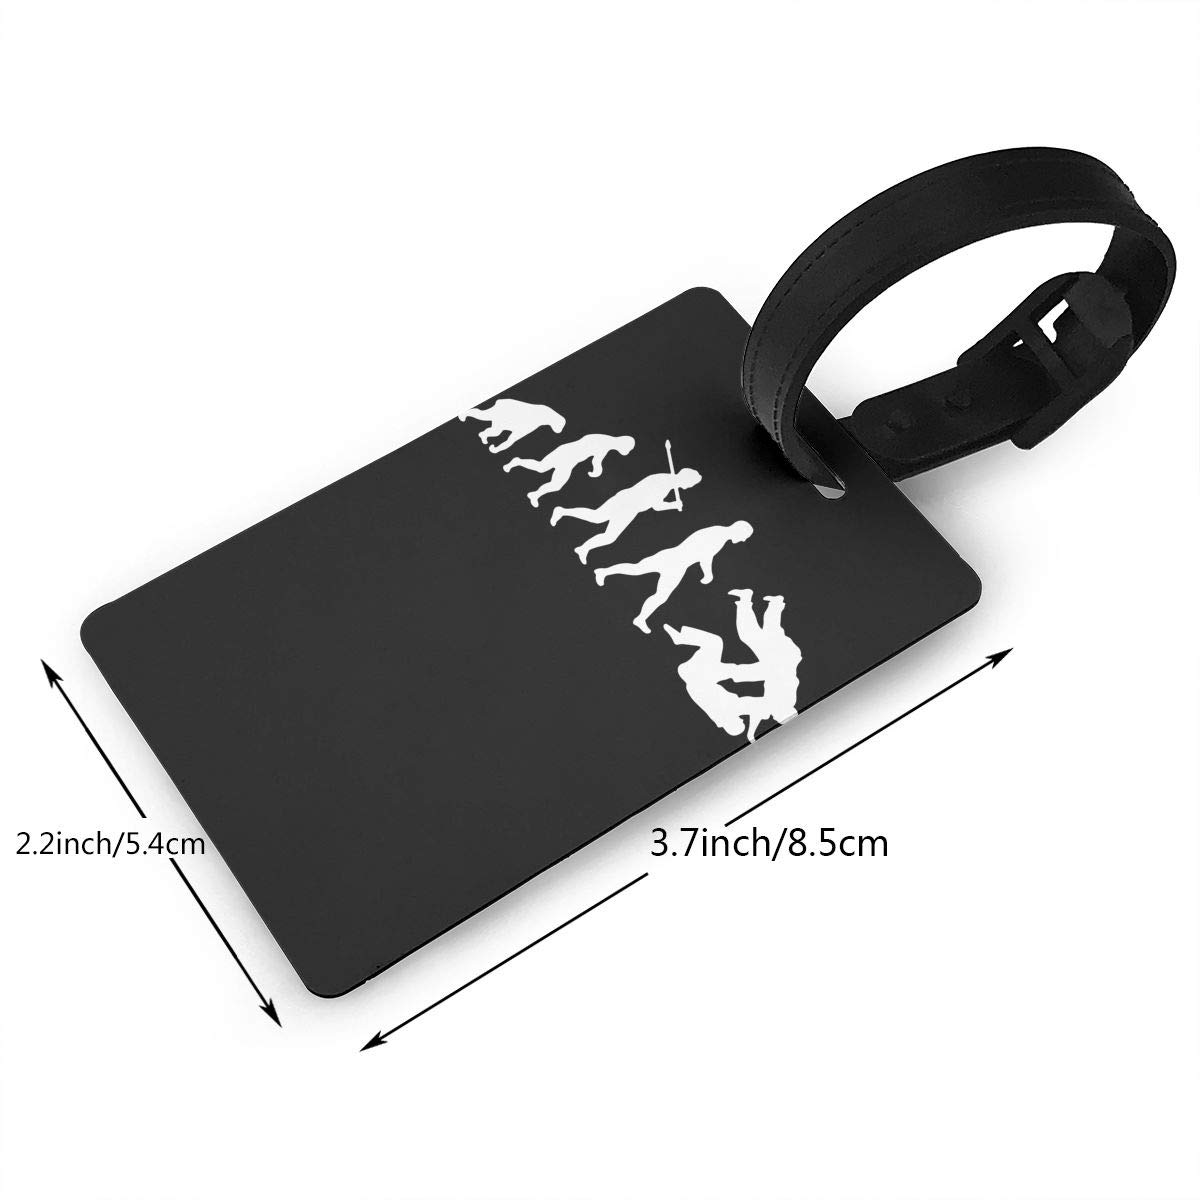 2 Pack Luggage Tags Evolution Judo Jiu Jitsu Travel Tags For Travel Bag Suitcase Accessories